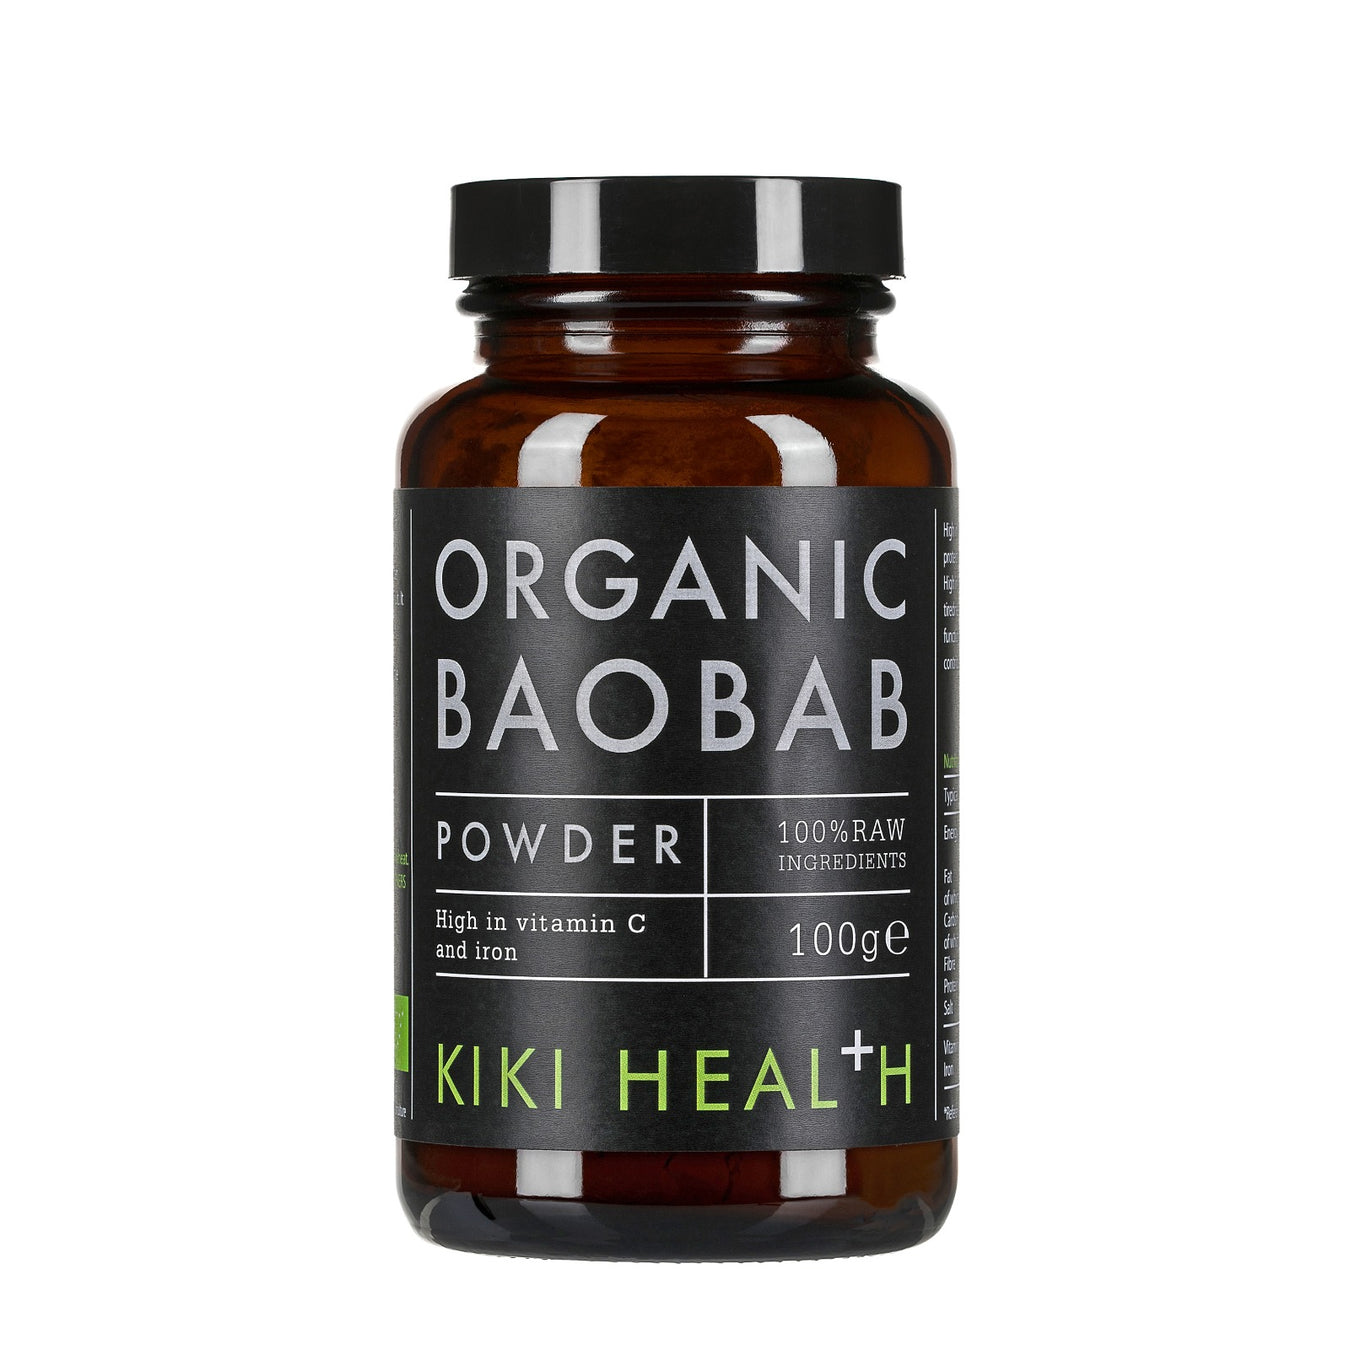 有機包包果粉 Kiki Health Organic Baobab Powder (100g)